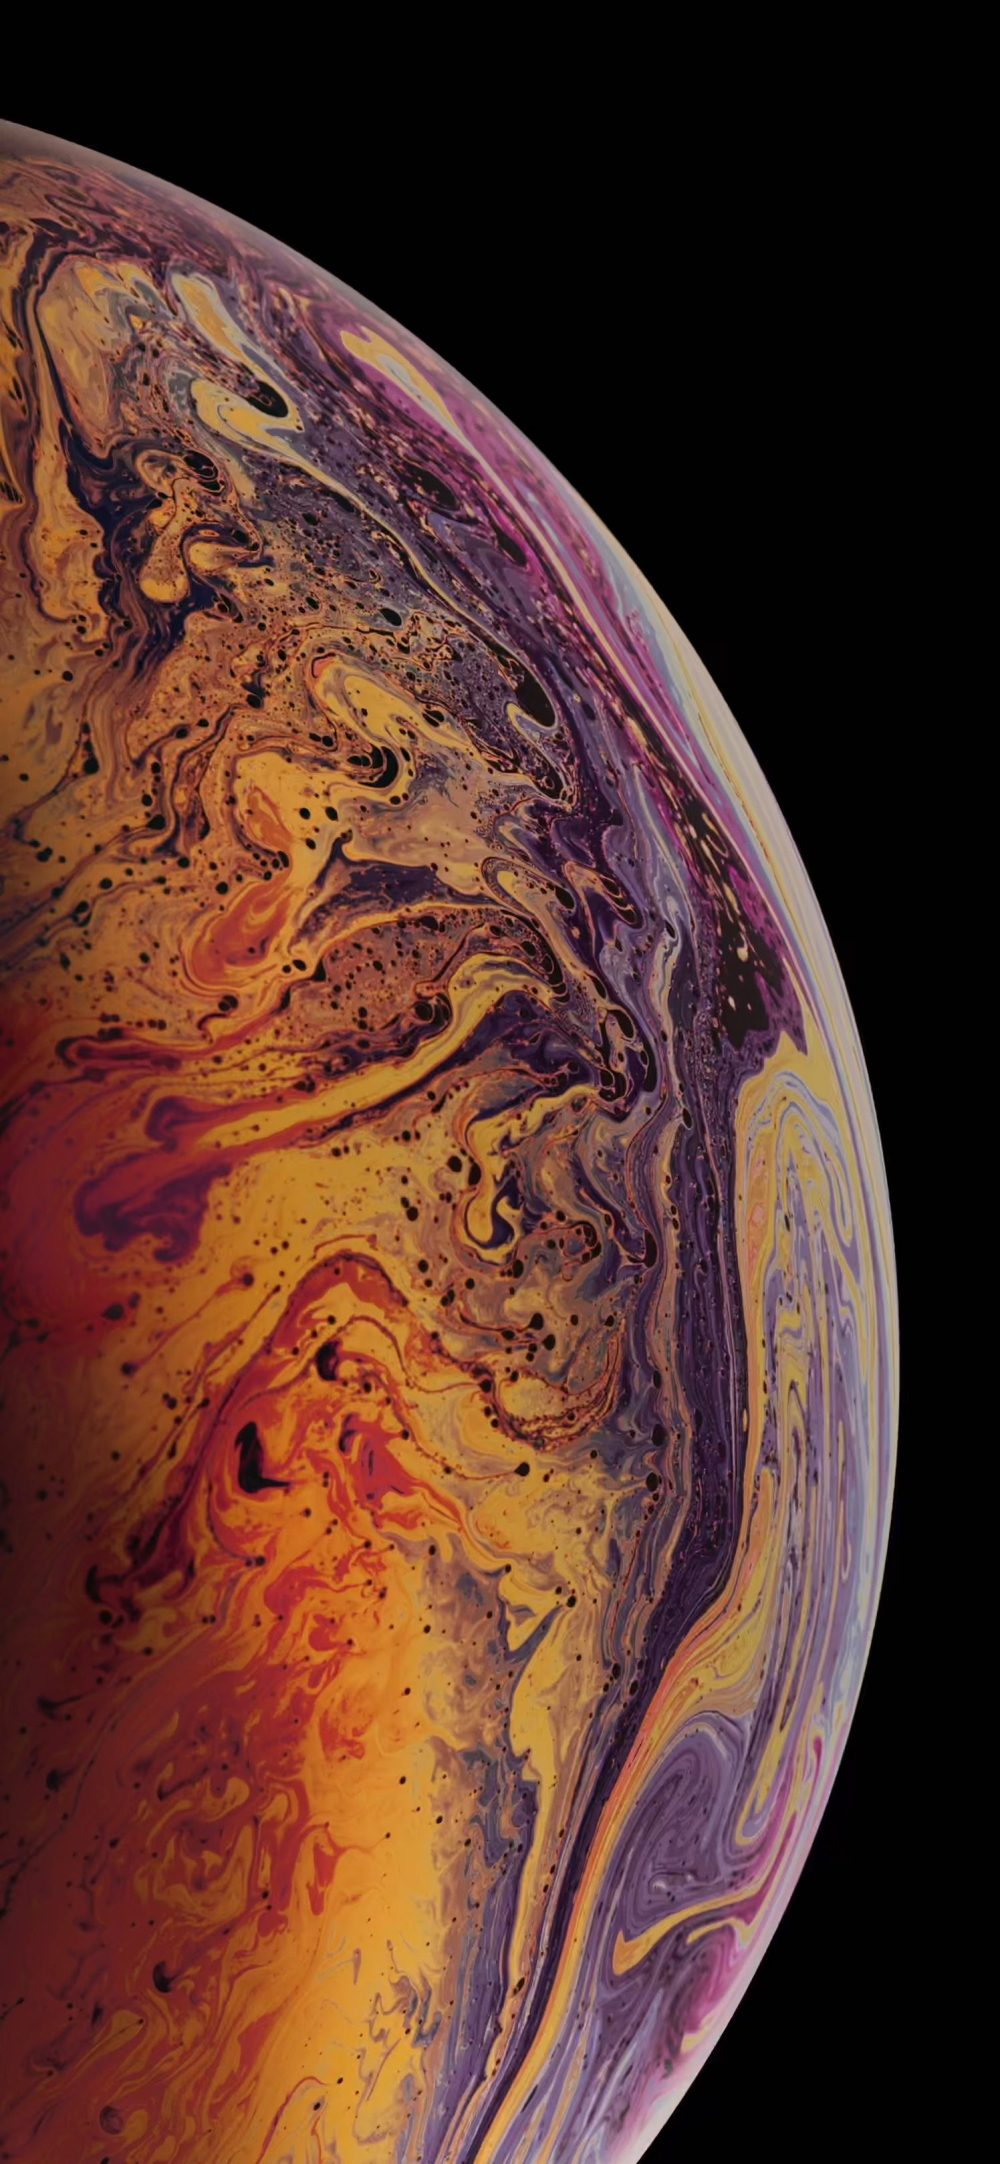 Download The 3 Official Iphone Xs And Xs Max Wallpapers Here Ios